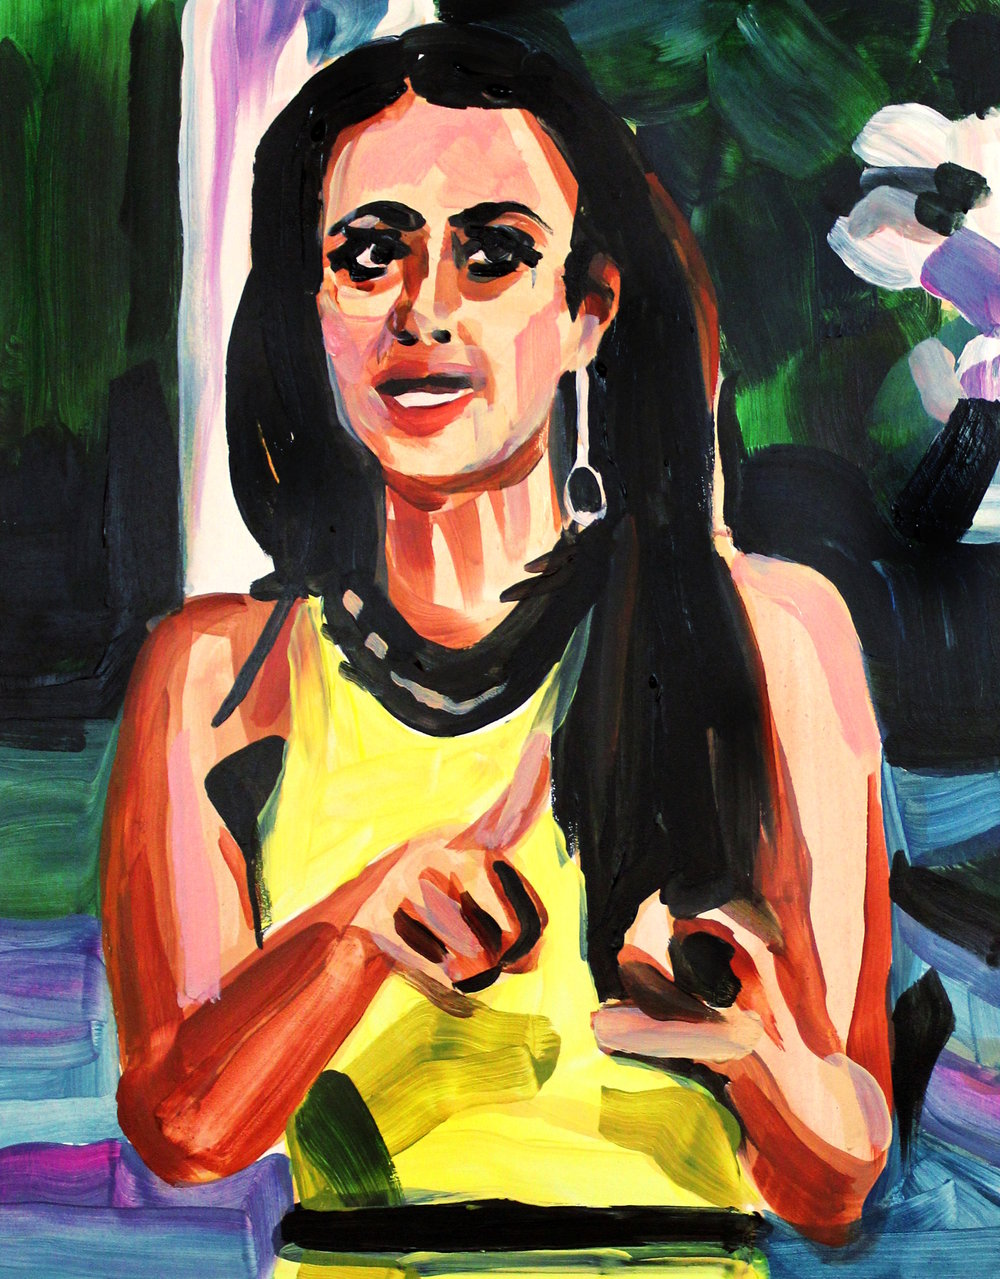 Laura Collins Kyle Richards Pointing Left and Right 11x14.JPG